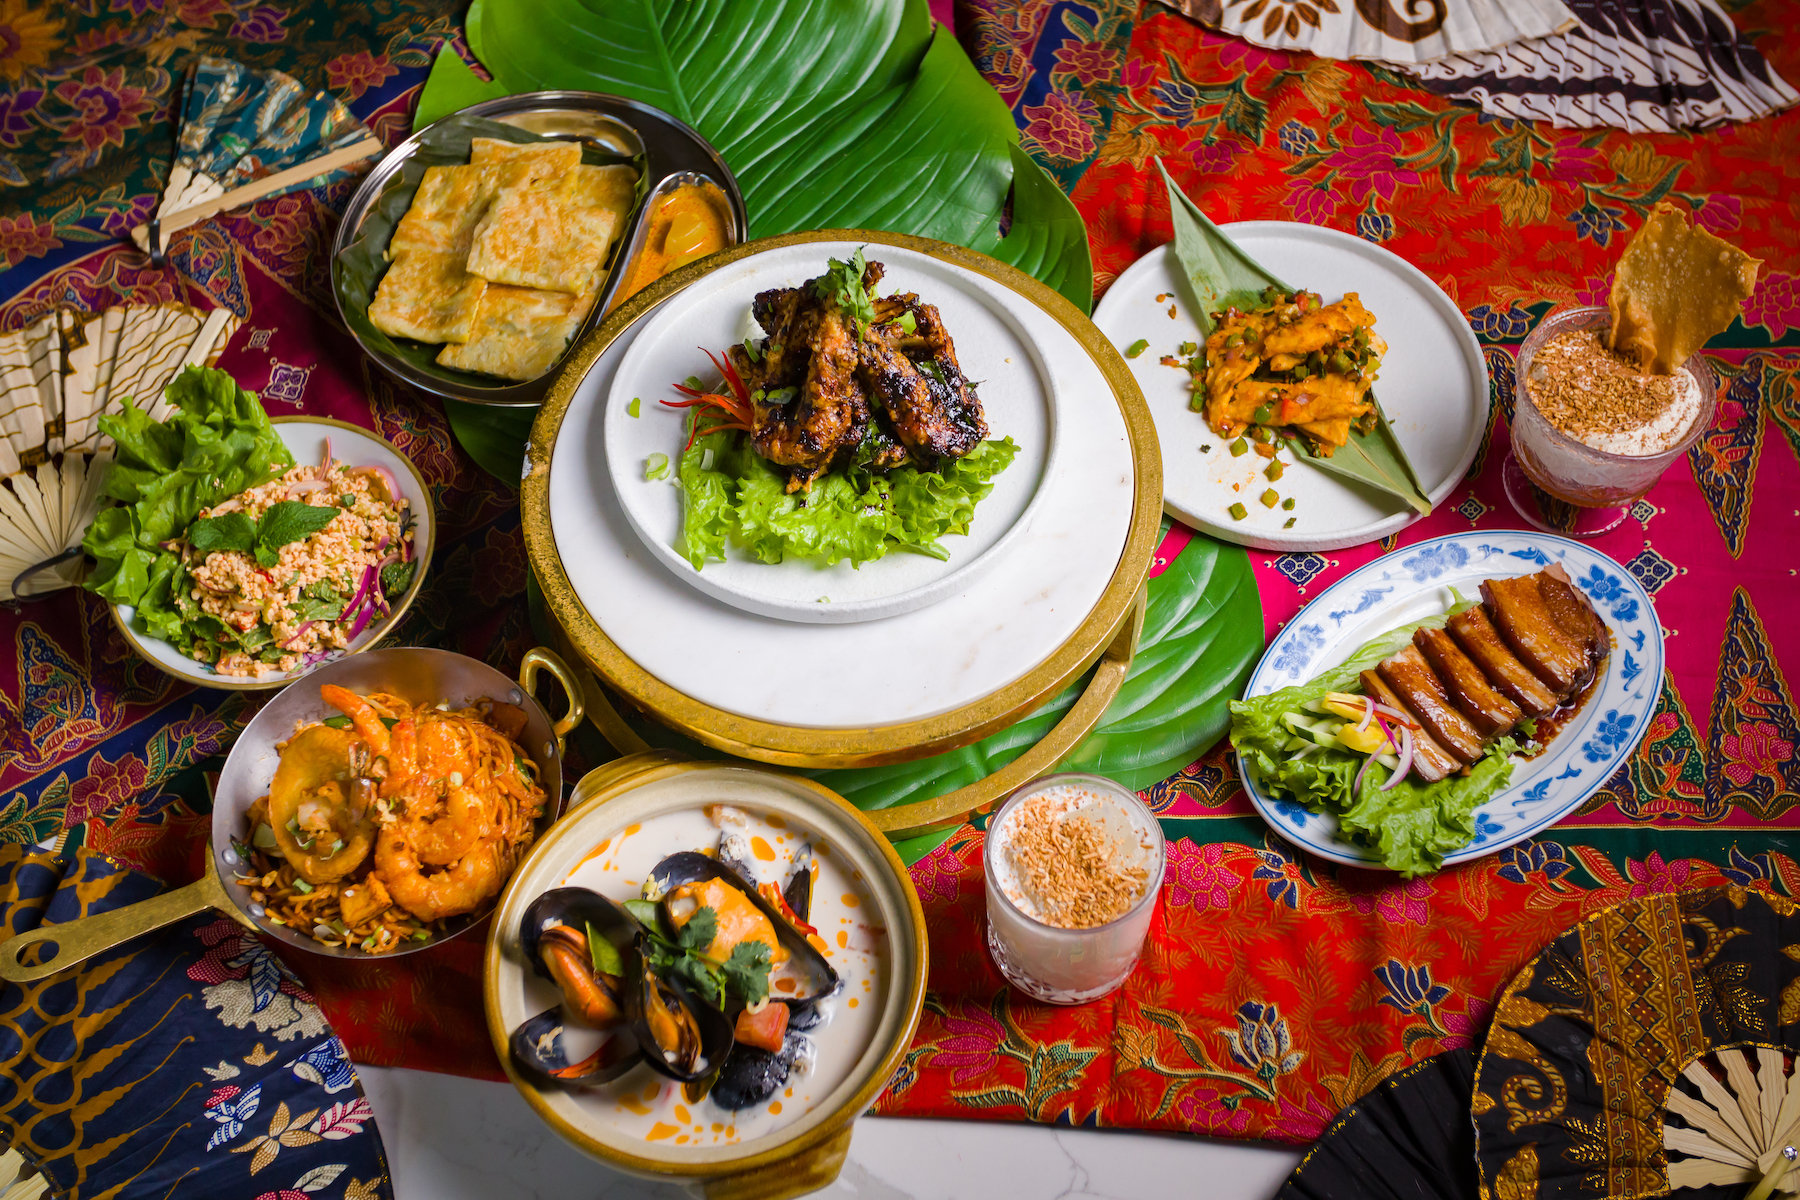 A spread of dishes on a colorful background at the Southeast Asian restaurant Wau